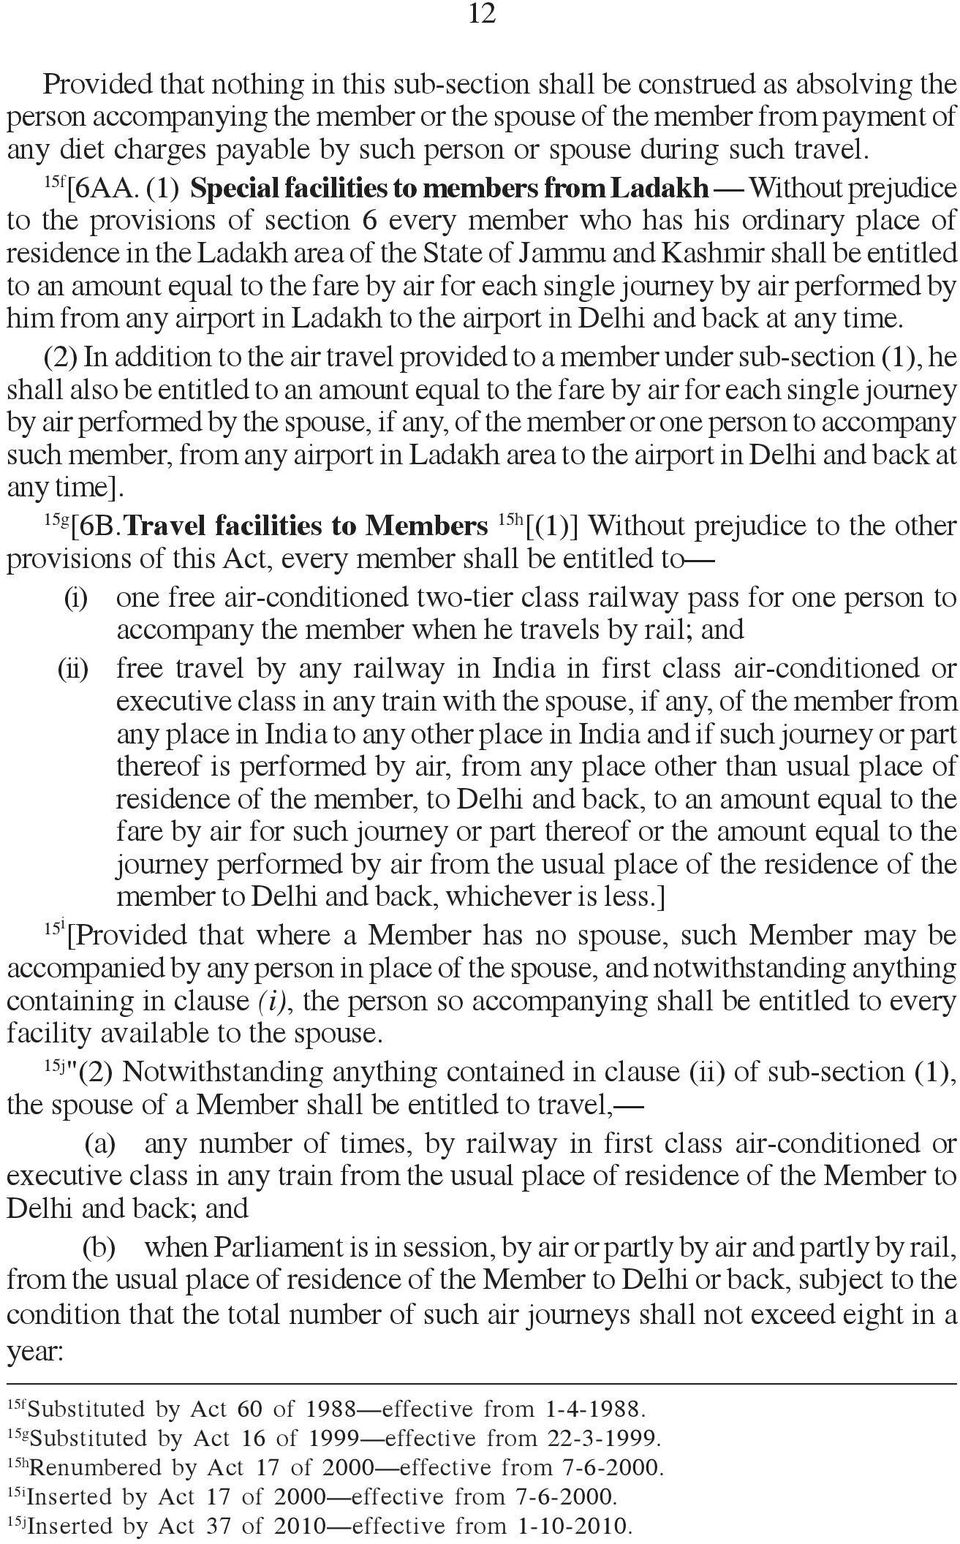 (1) Special facilities to members from Ladakh Without prejudice to the provisions of section 6 every member who has his ordinary place of residence in the Ladakh area of the State of Jammu and